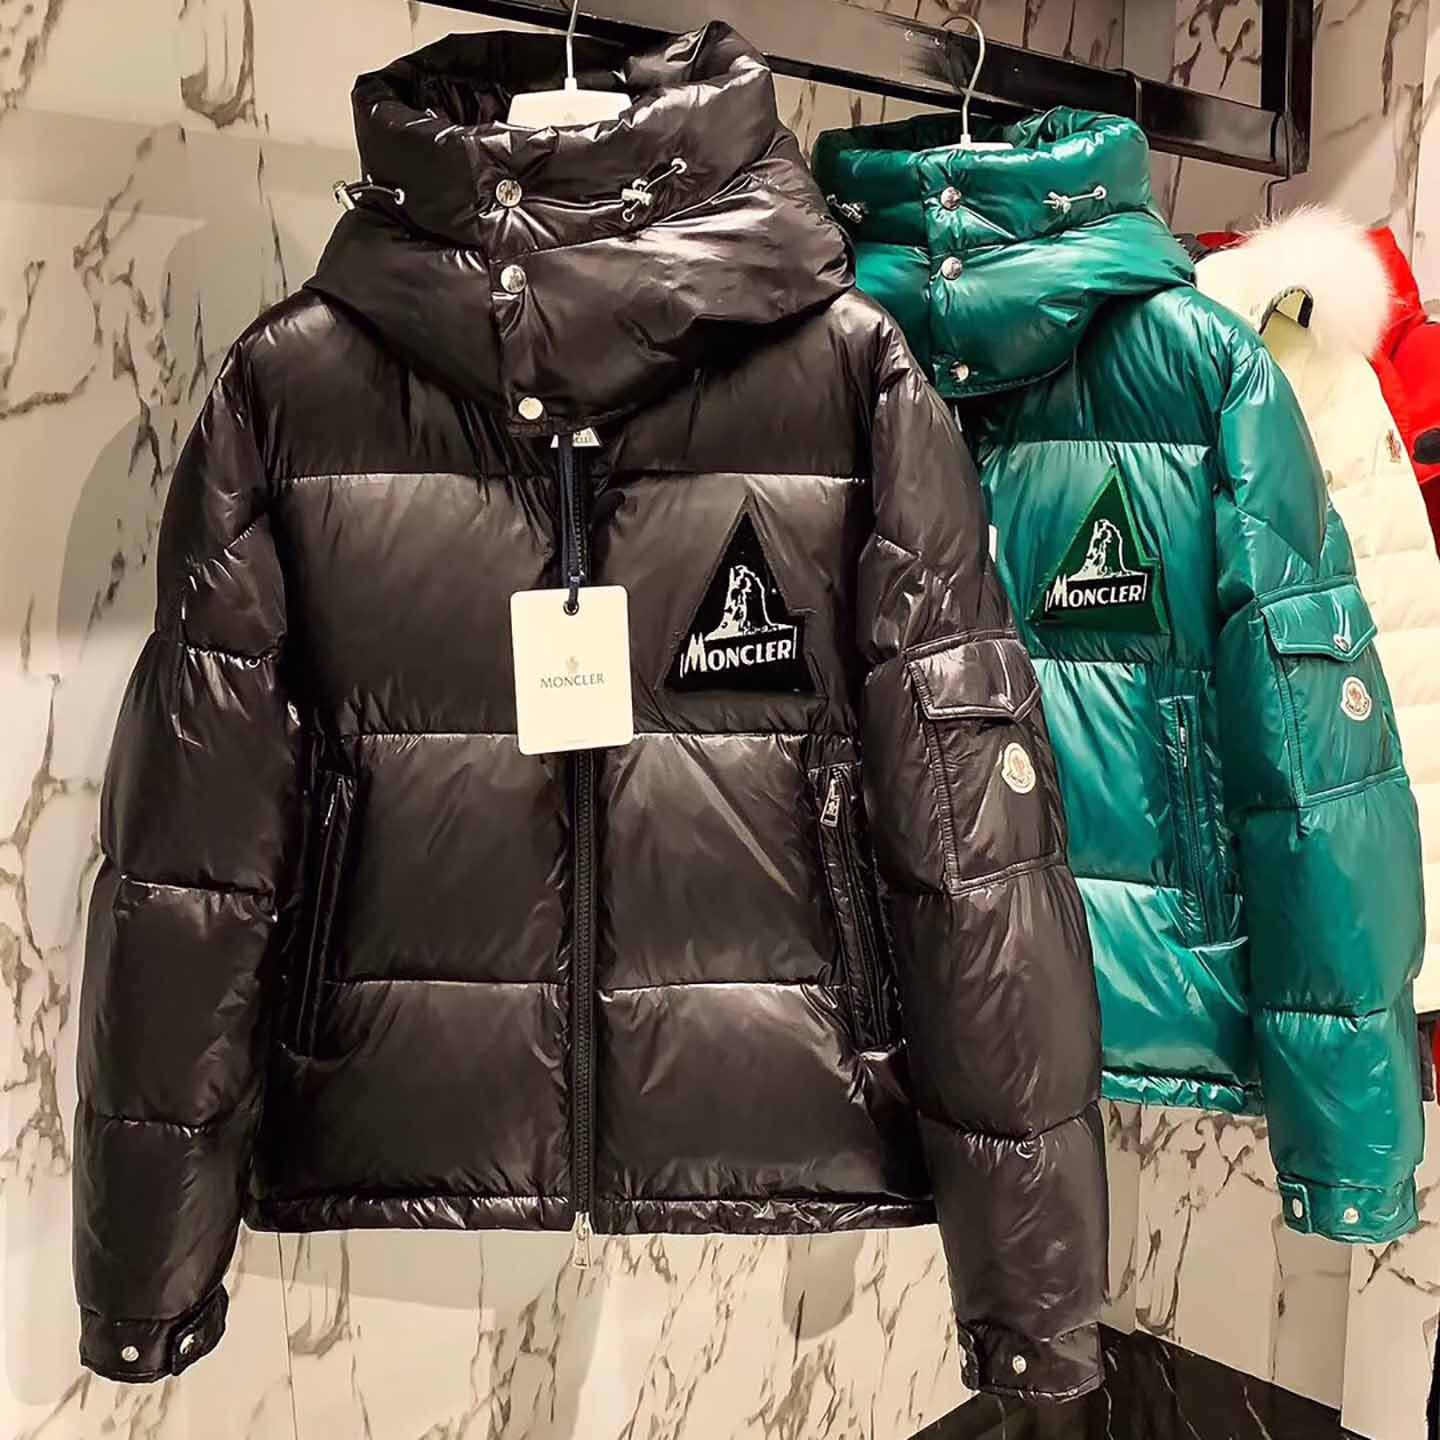 Moncler Down Jacket in Black - FashionBeast